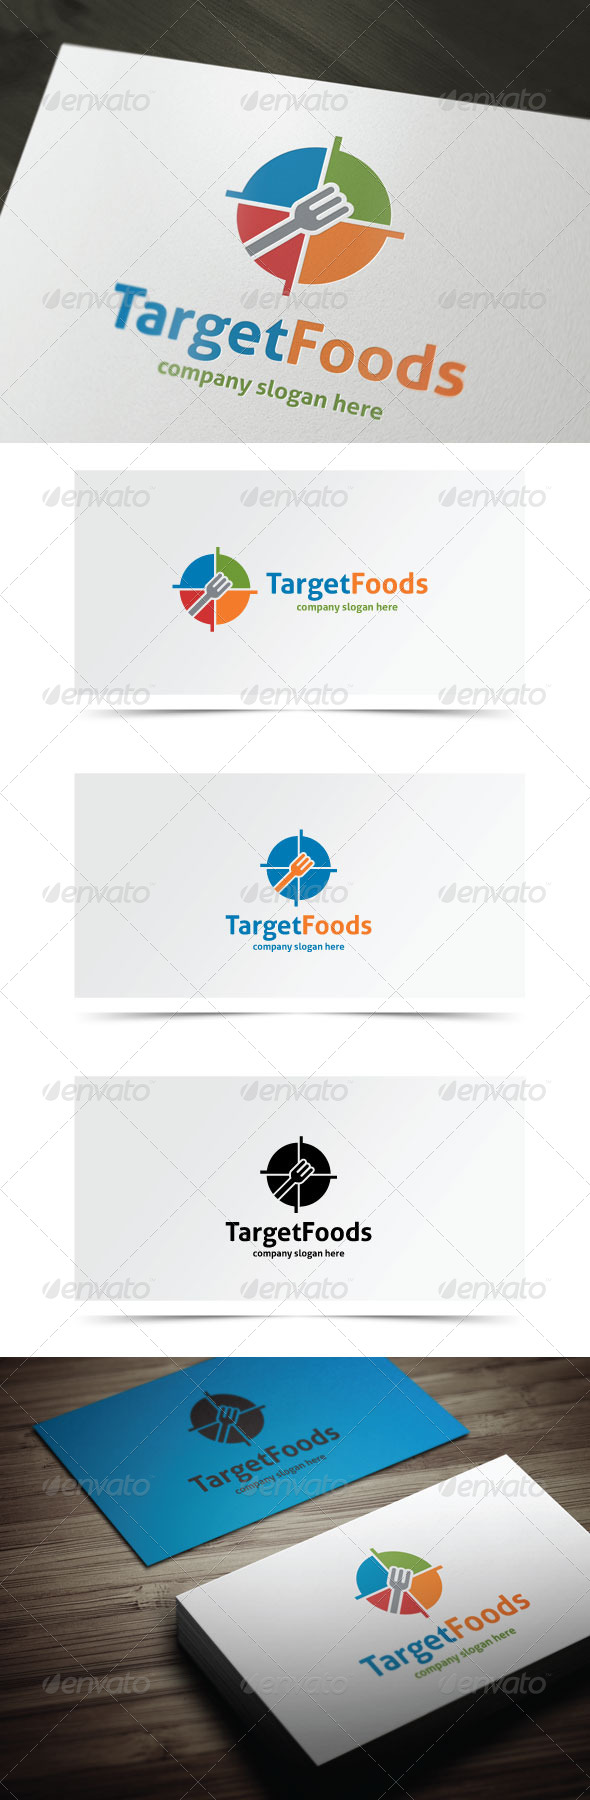 GraphicRiver Target Foods 7931898